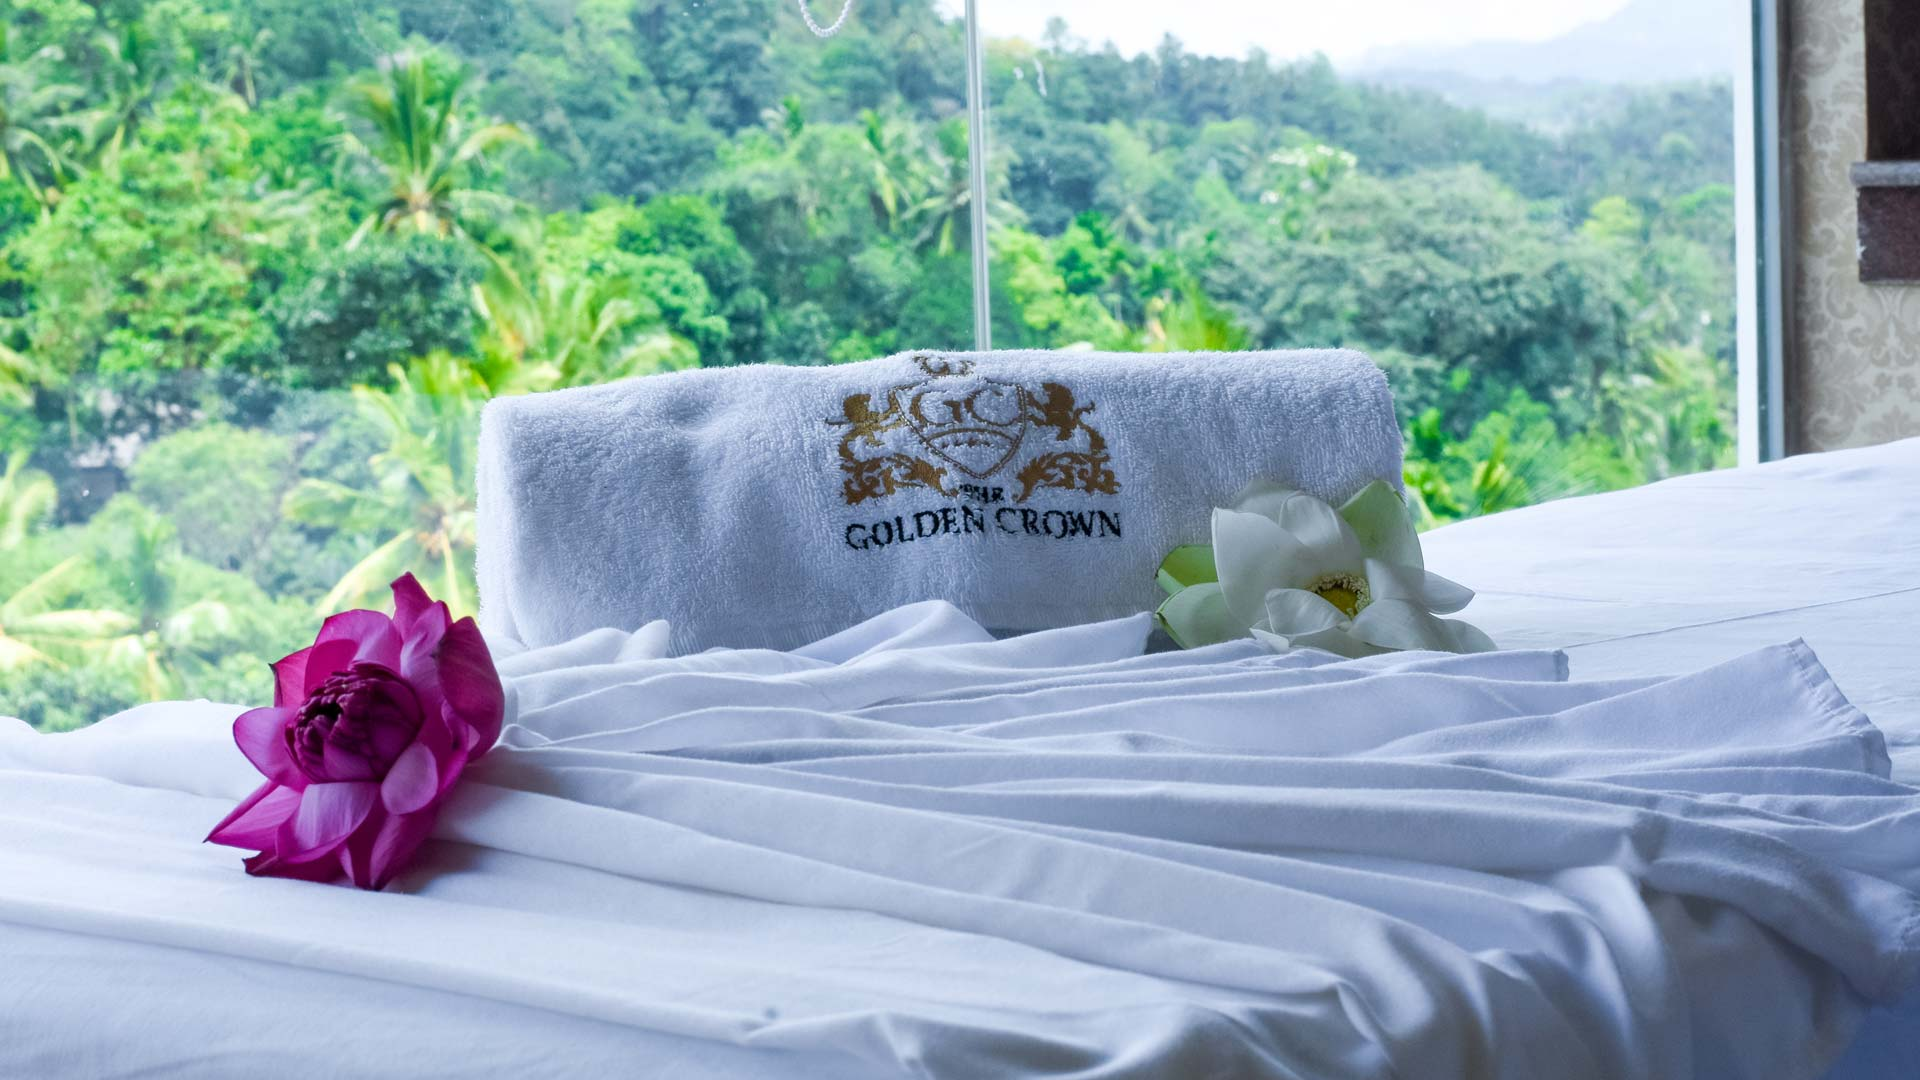 The Golden Crown - spa and wellness center